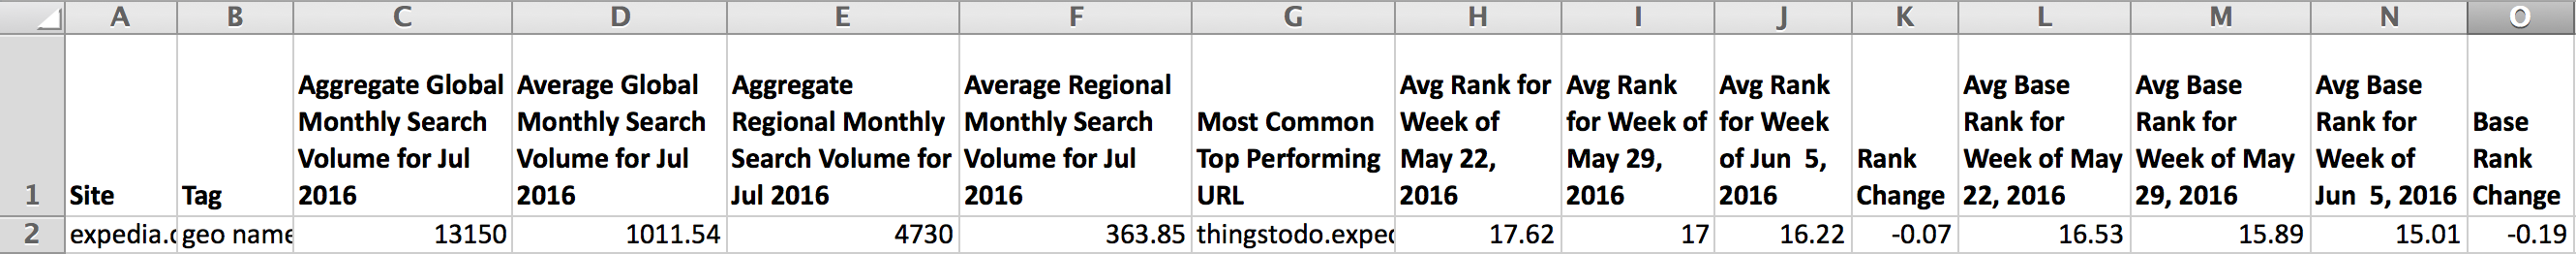 ranking trend for a tag week-over-week